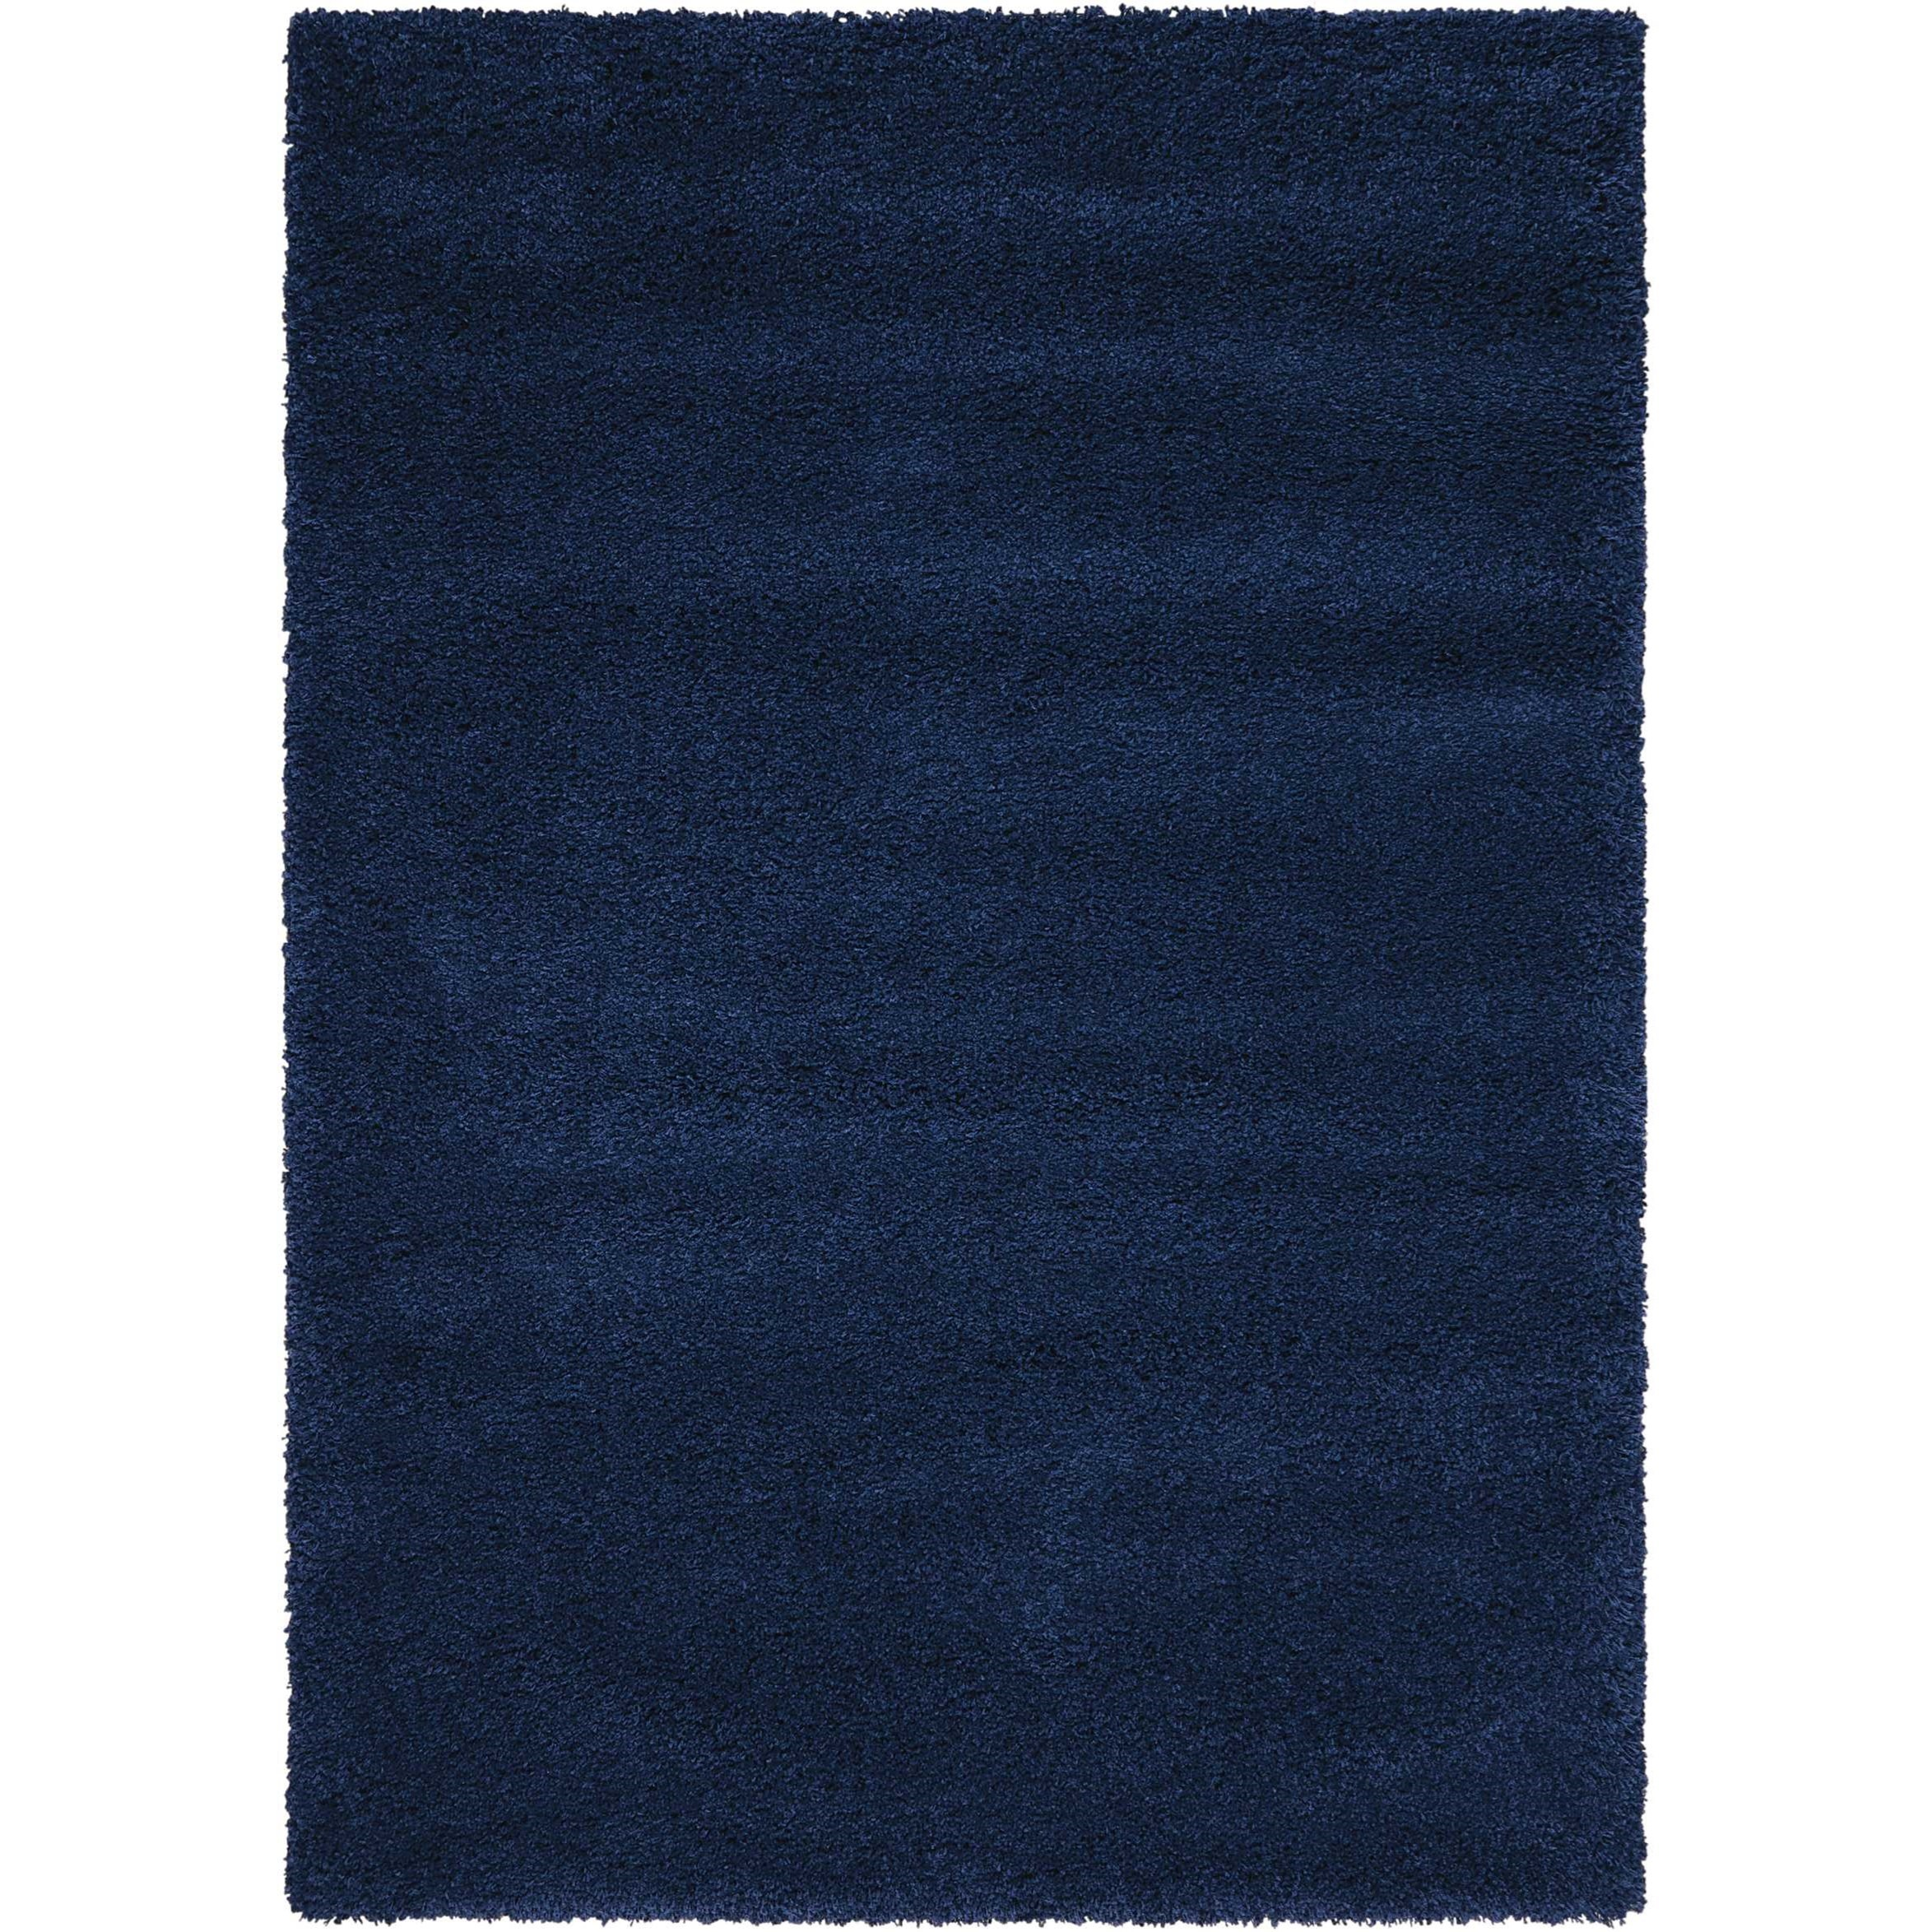 Amore Amore AMOR1 Blue 8'x11'   Rug by Nourison at Sprintz Furniture